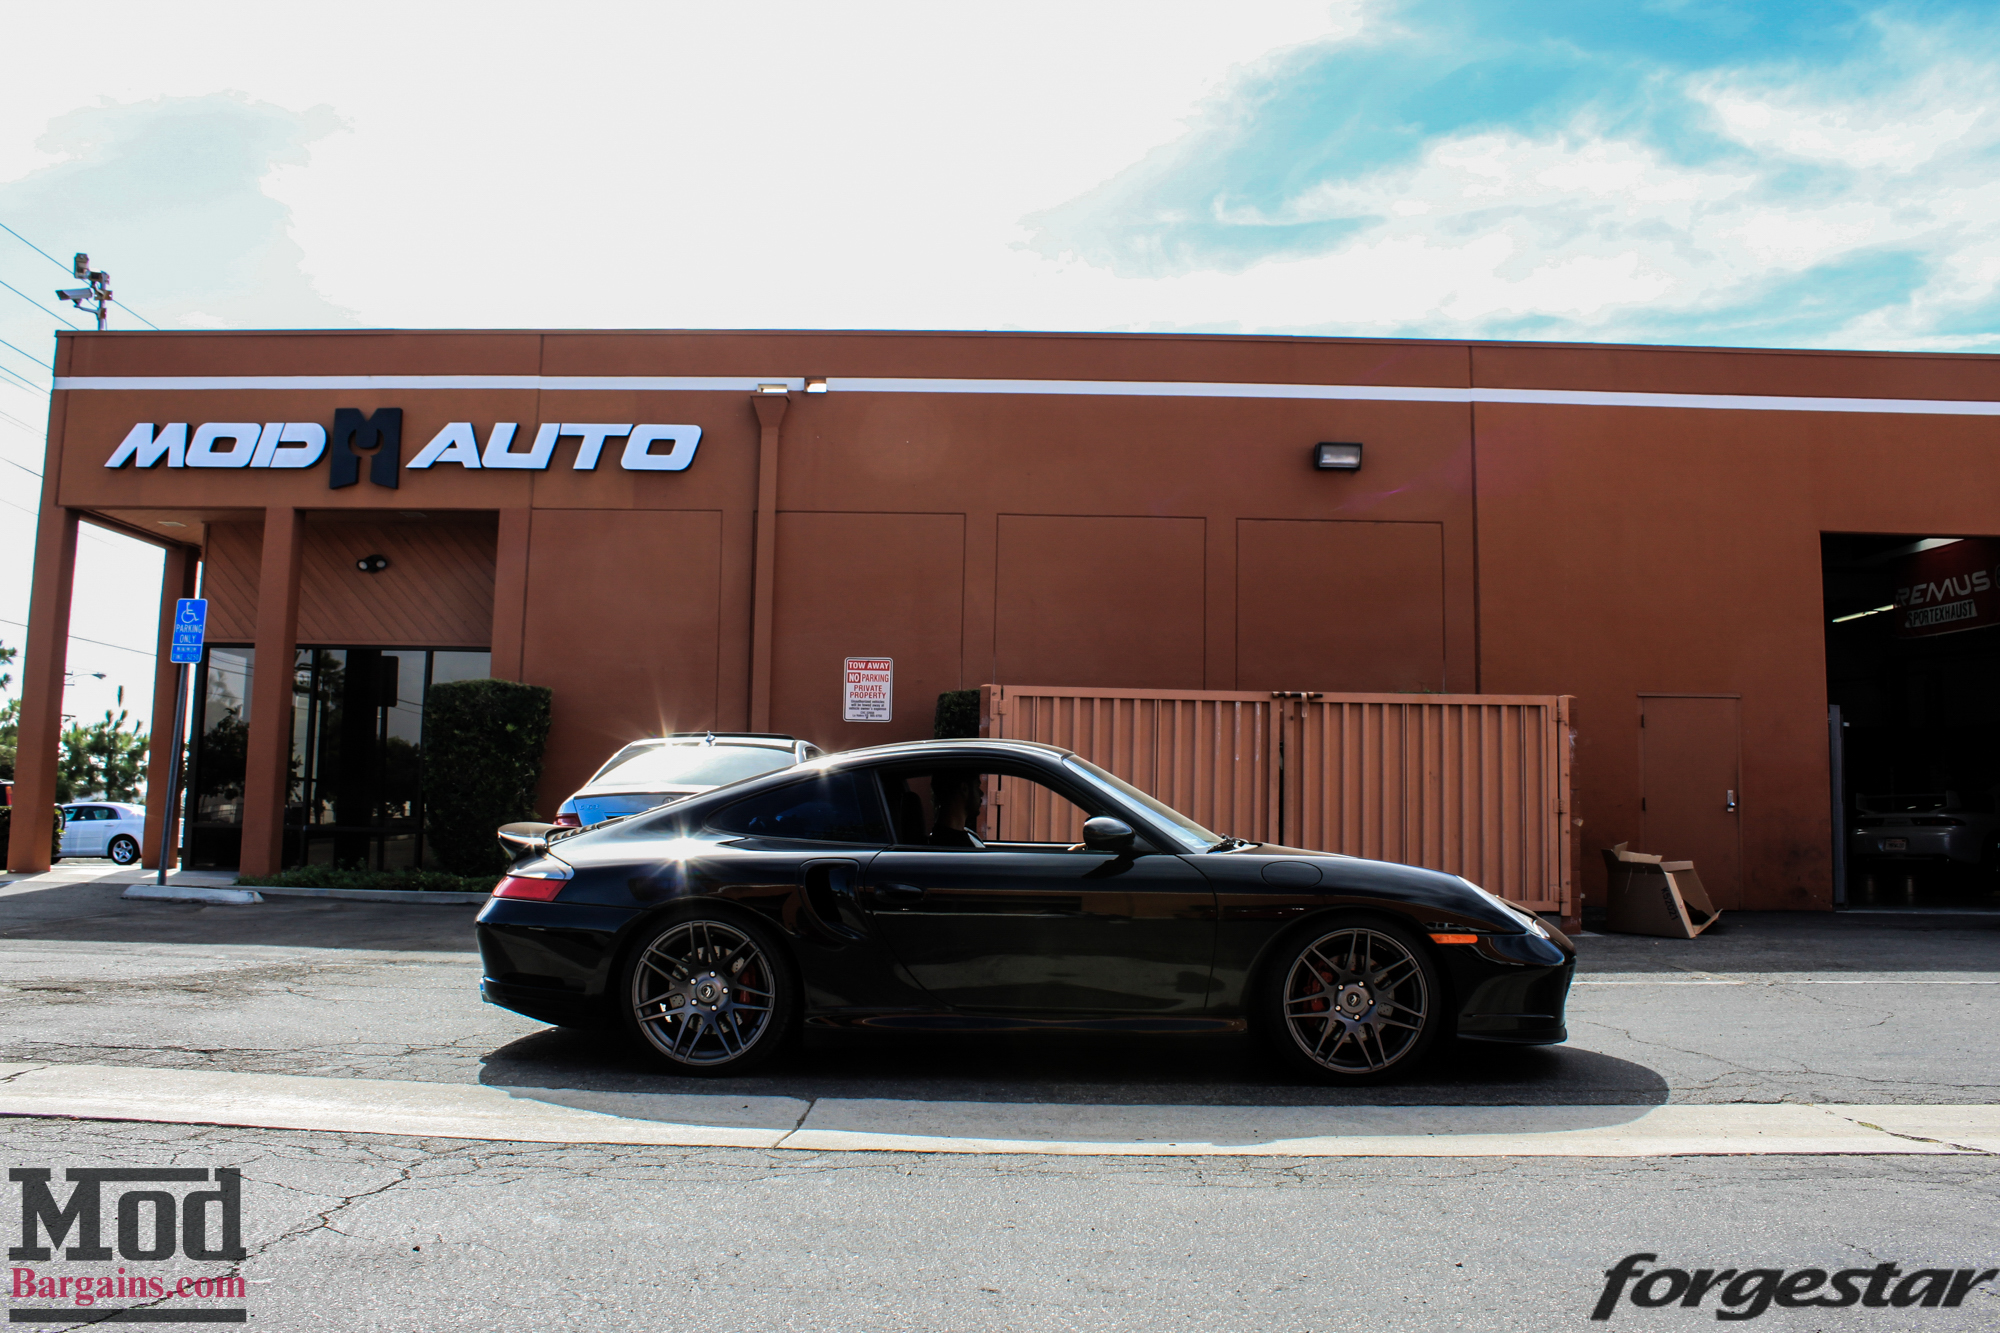 AirRex Air Suspension Installed on Porsche 997 at Mod Auto